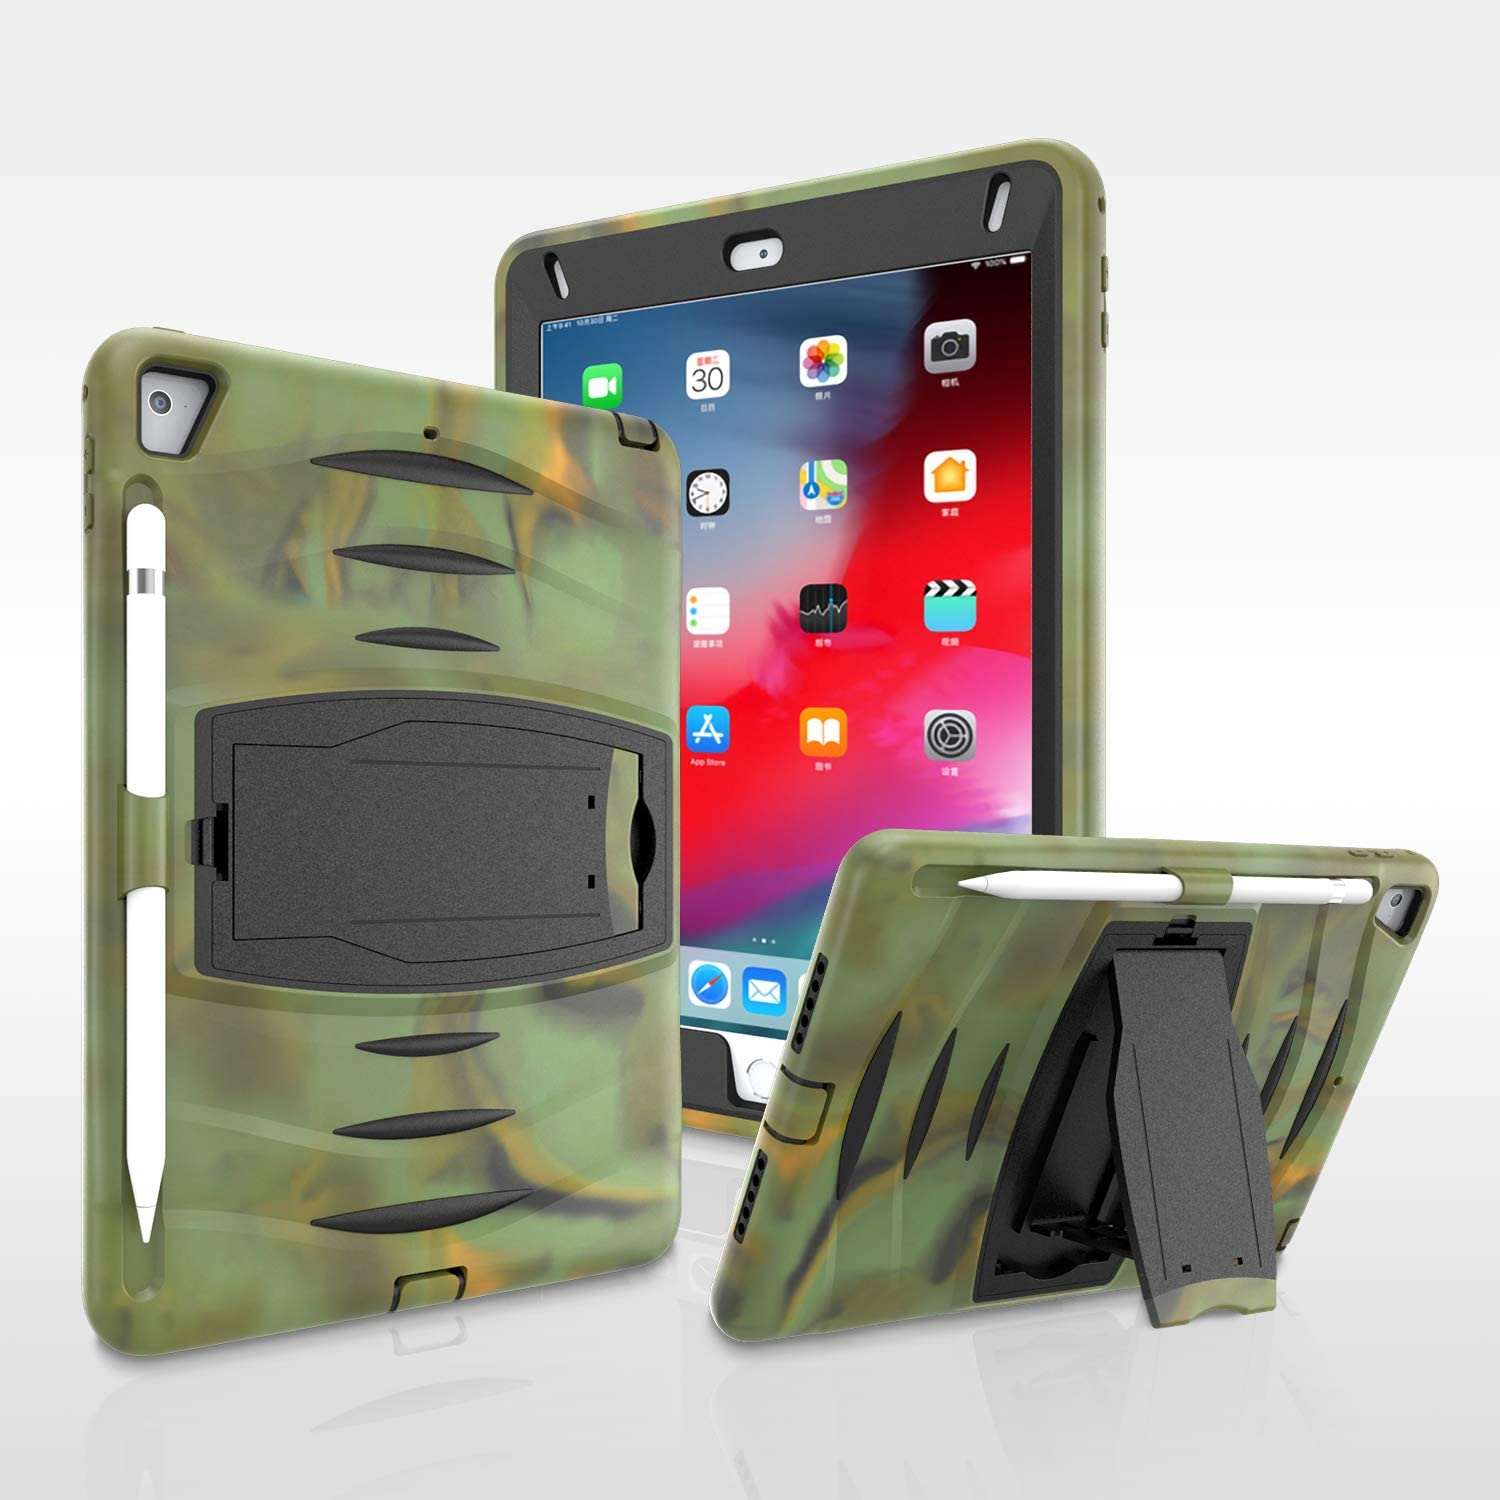 Caseitnow- iPad Pro 11 inch Case - Heavy Duty Drop Resistant Protective Case with Apple Pencil Holder and Kickstand for iPad Pro 11 inch (Camouflage)